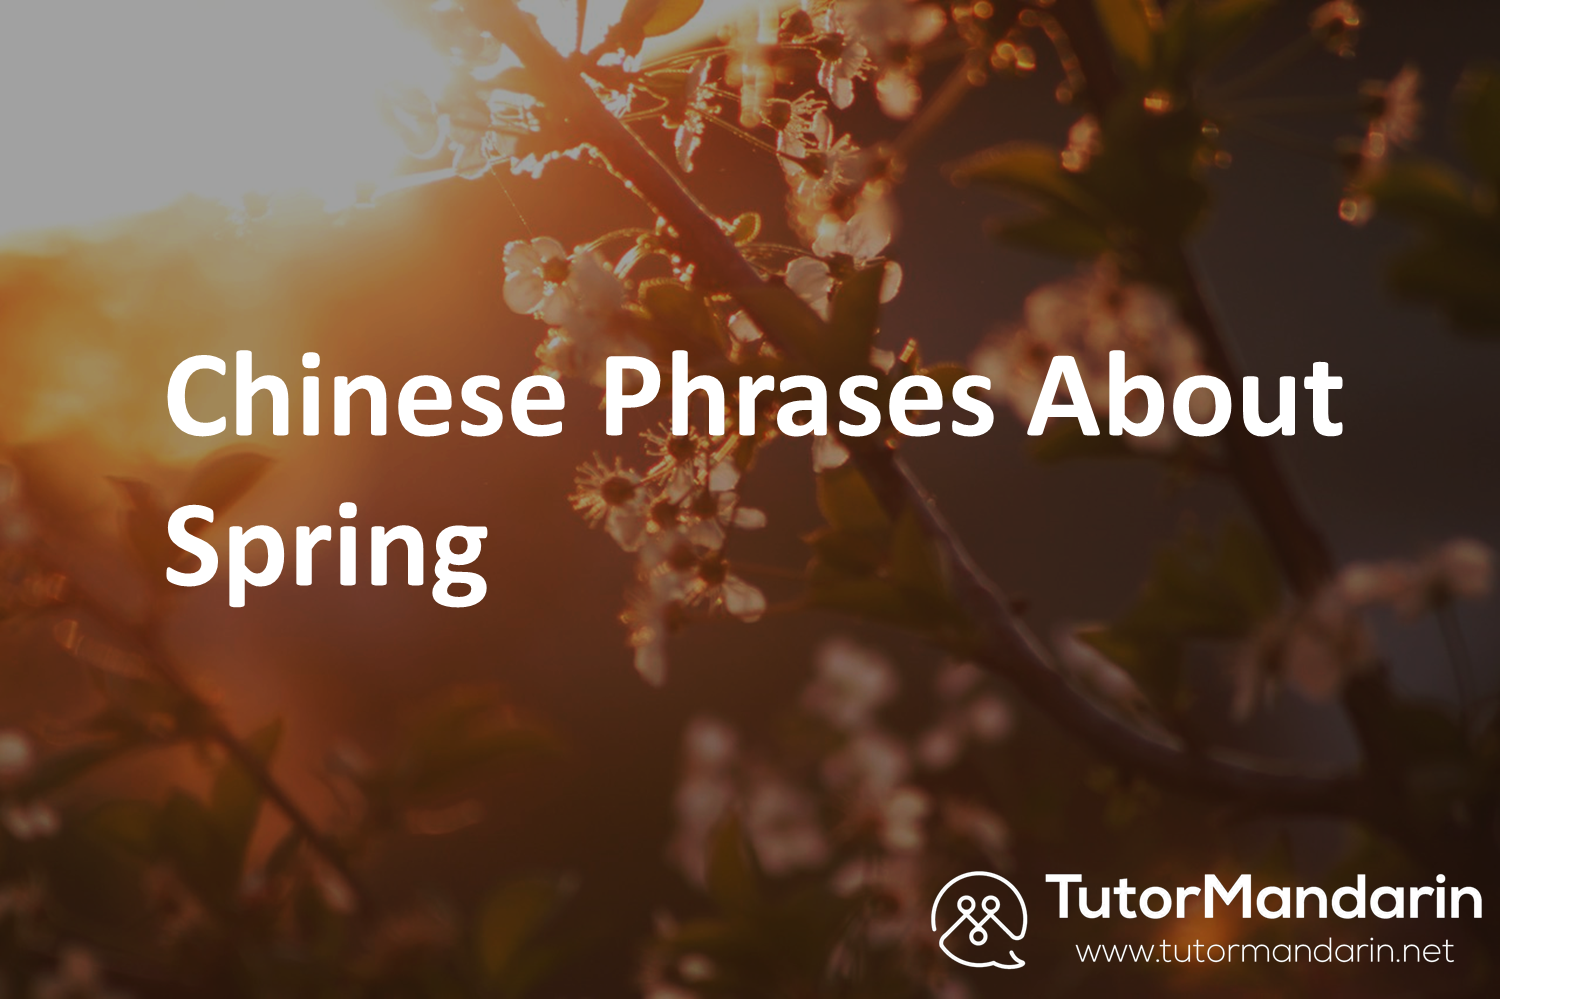 Chinese Phrases About Spring with Tutormandarin 1-on-1 online lessons